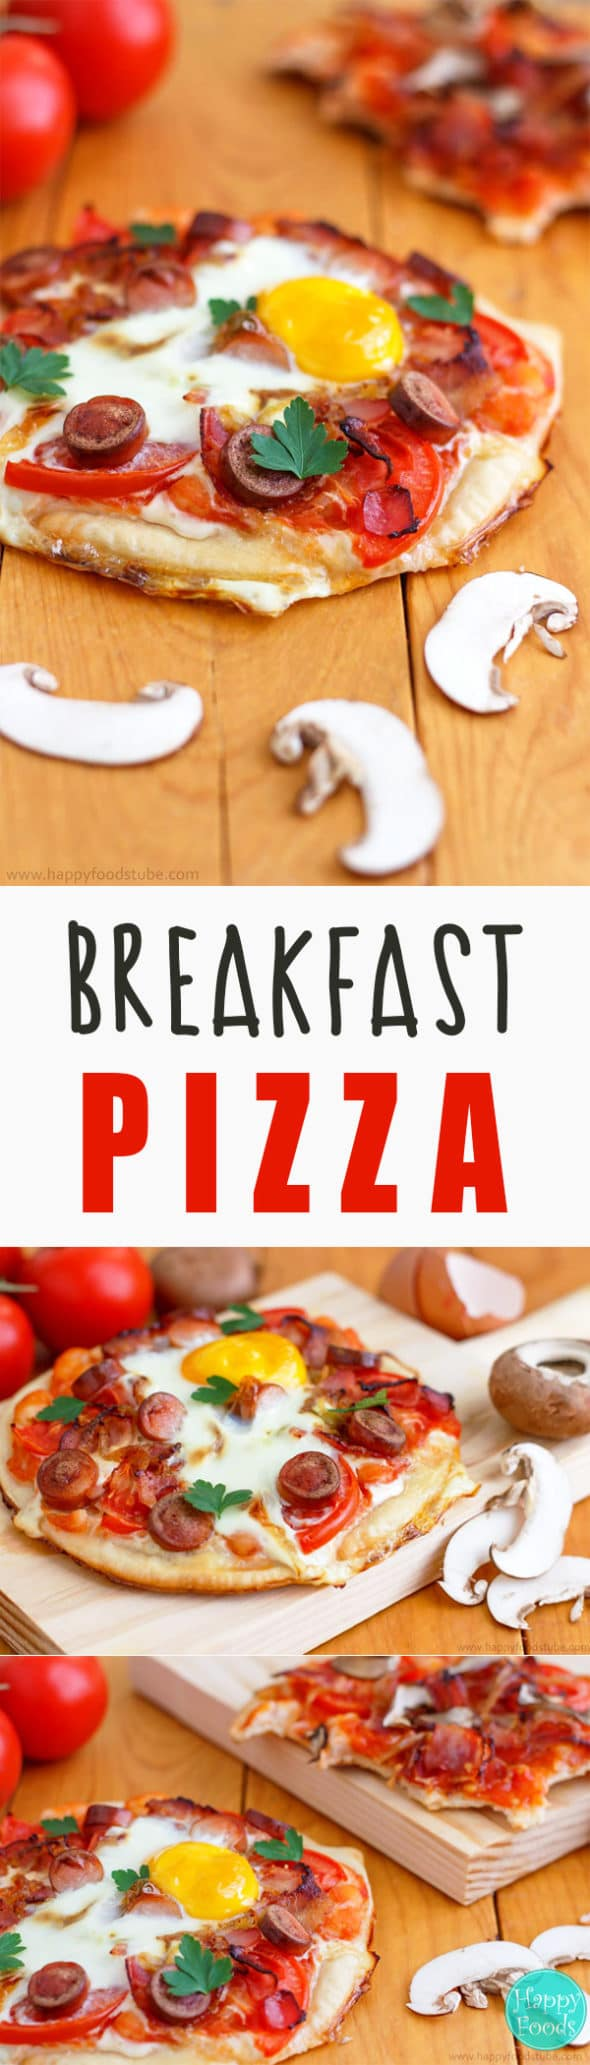 Breakfast Pizza with Bacon, Mushrooms, Beans & Eggs is the way to start your day! All your favorite things on a pizza crust